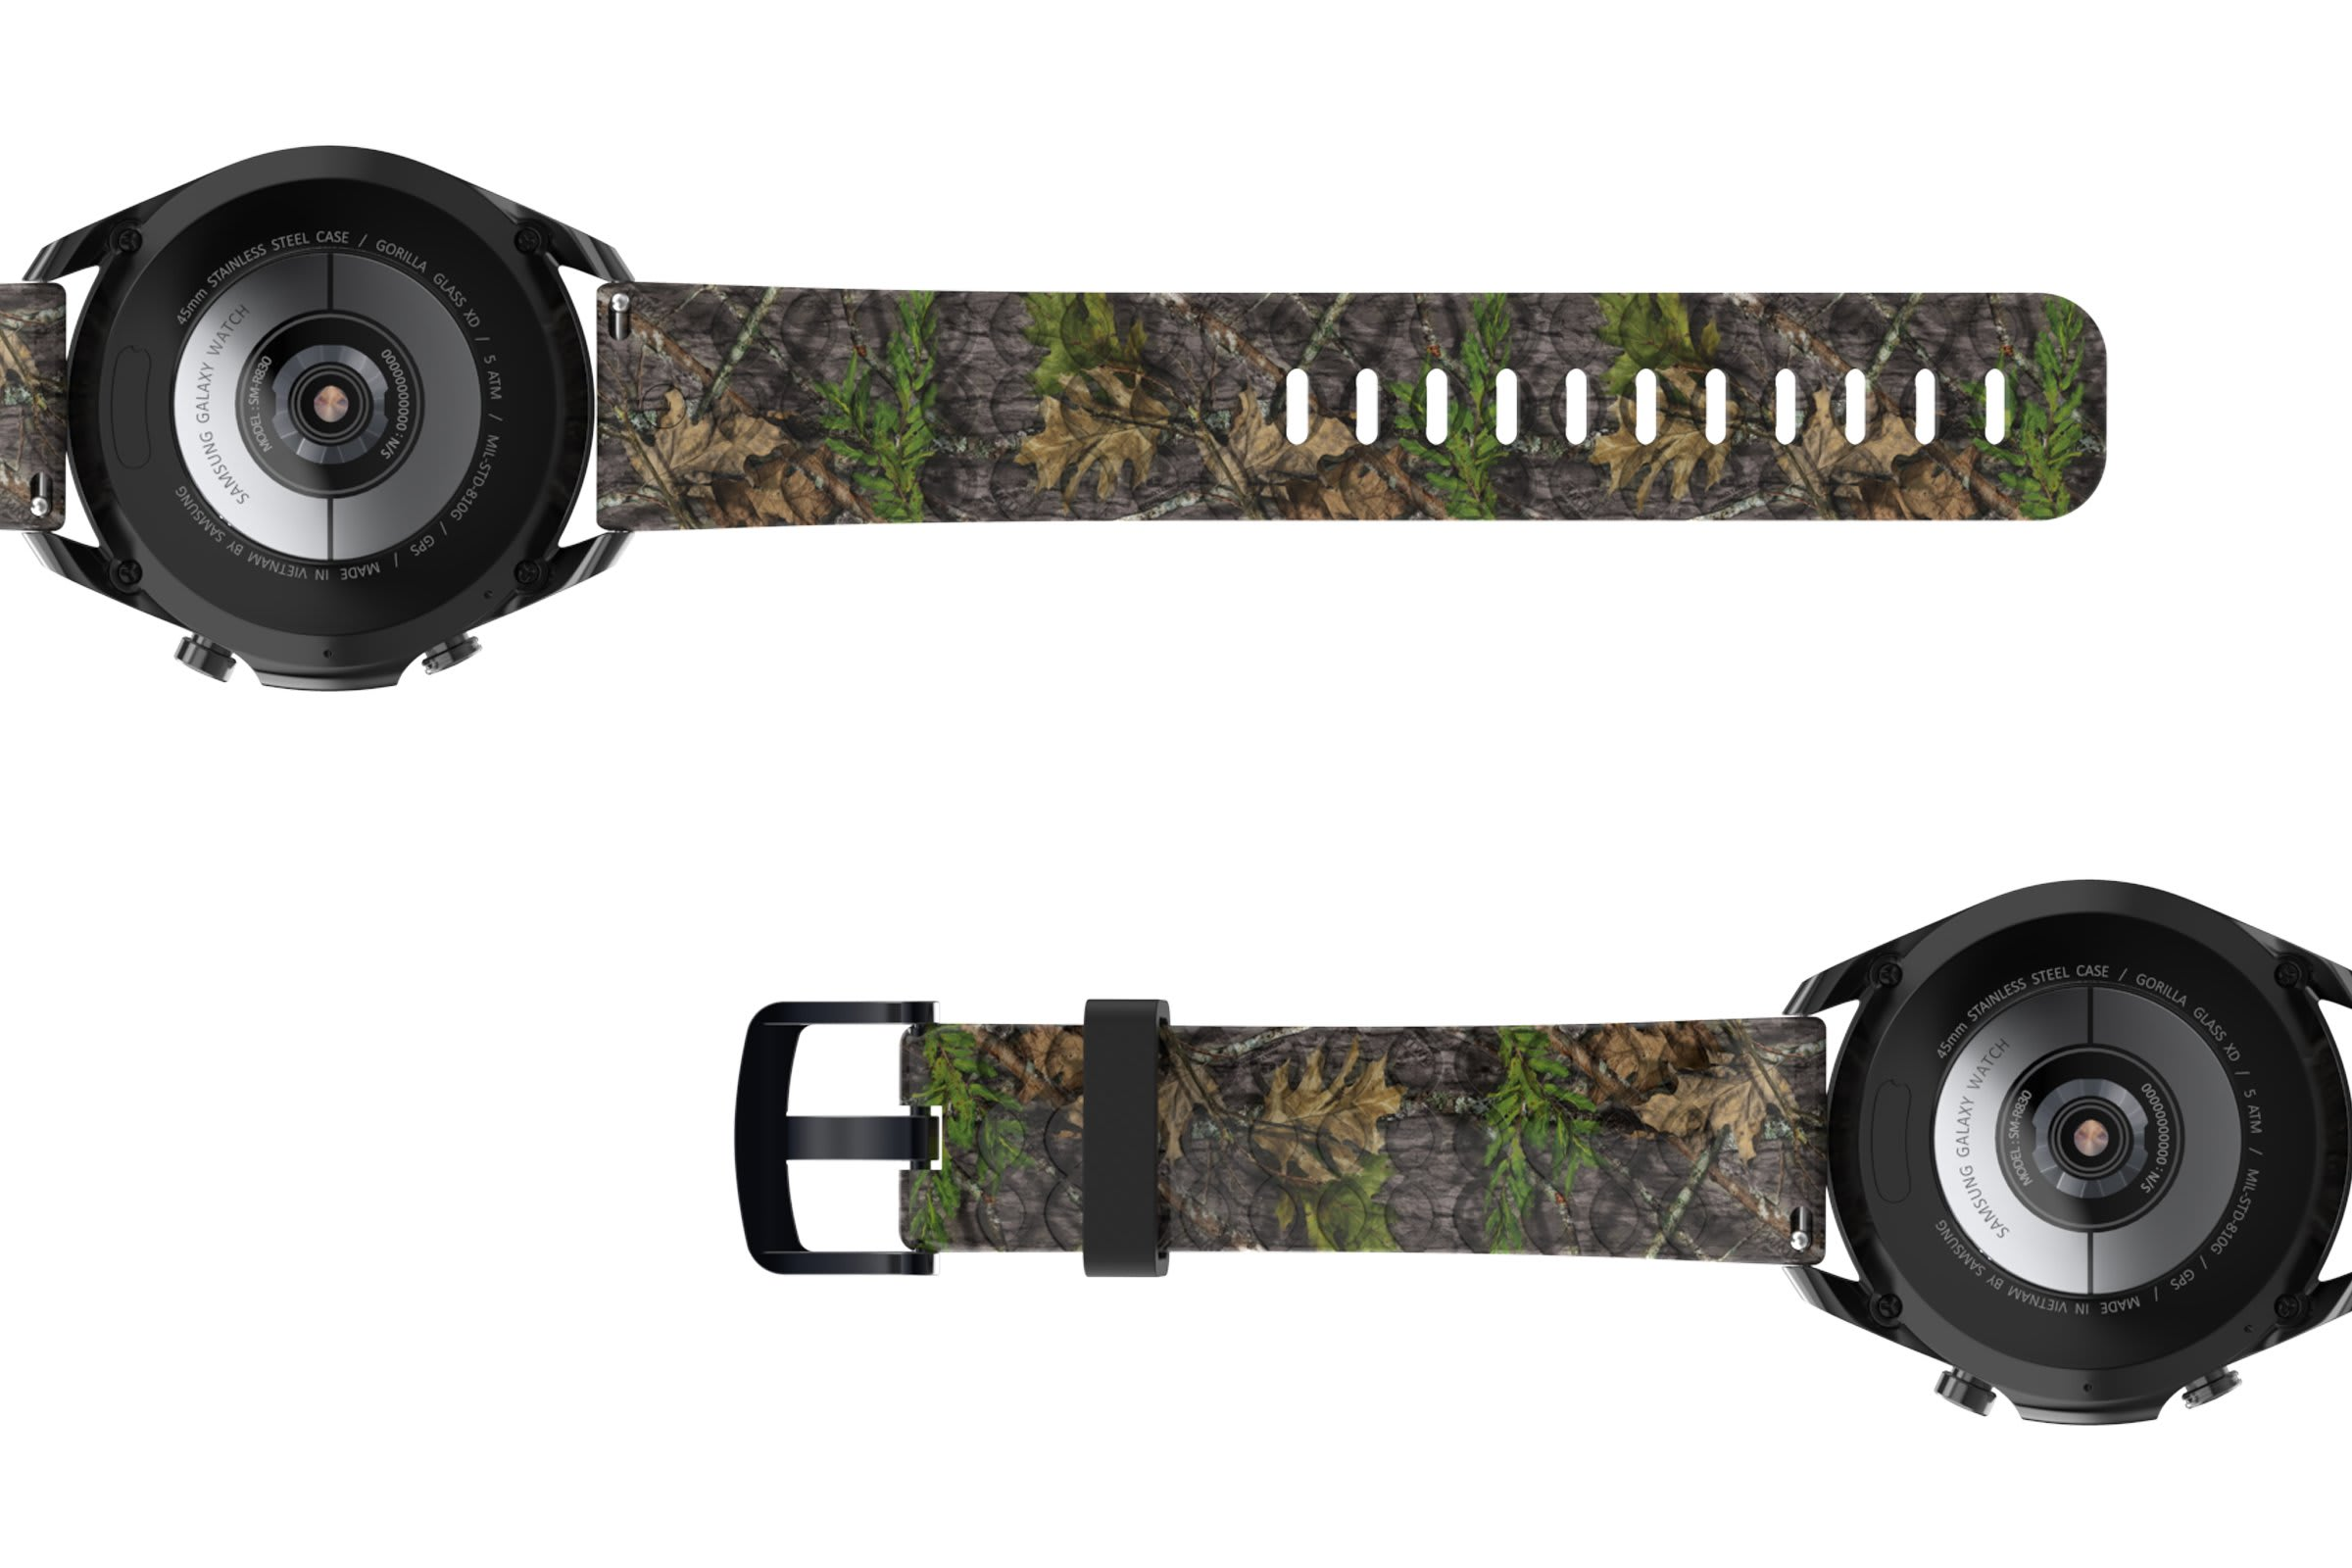 NWTF Mossy Oak Obsession Samsung 22mm   watch band viewed bottom up